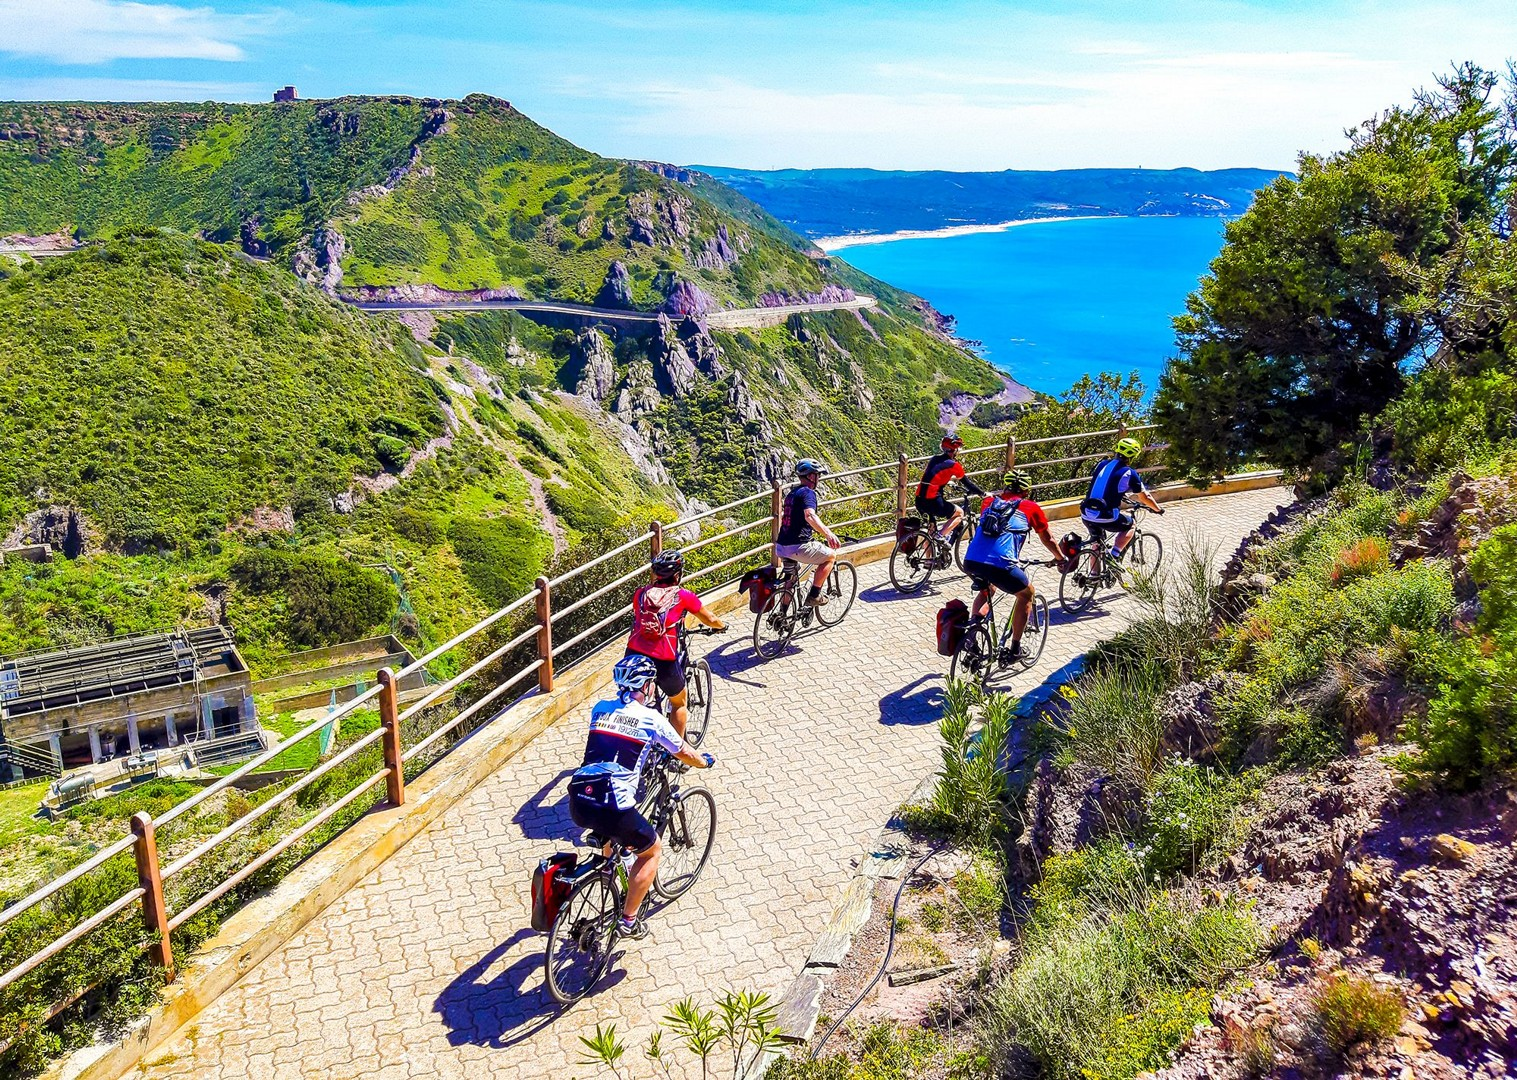 leisure-cycling-holiday-island-flavours-sardinia.jpg - Italy - Sardinia - Island Flavours - Guided Leisure Cycling Holiday - Italia Leisure and Family Cycling